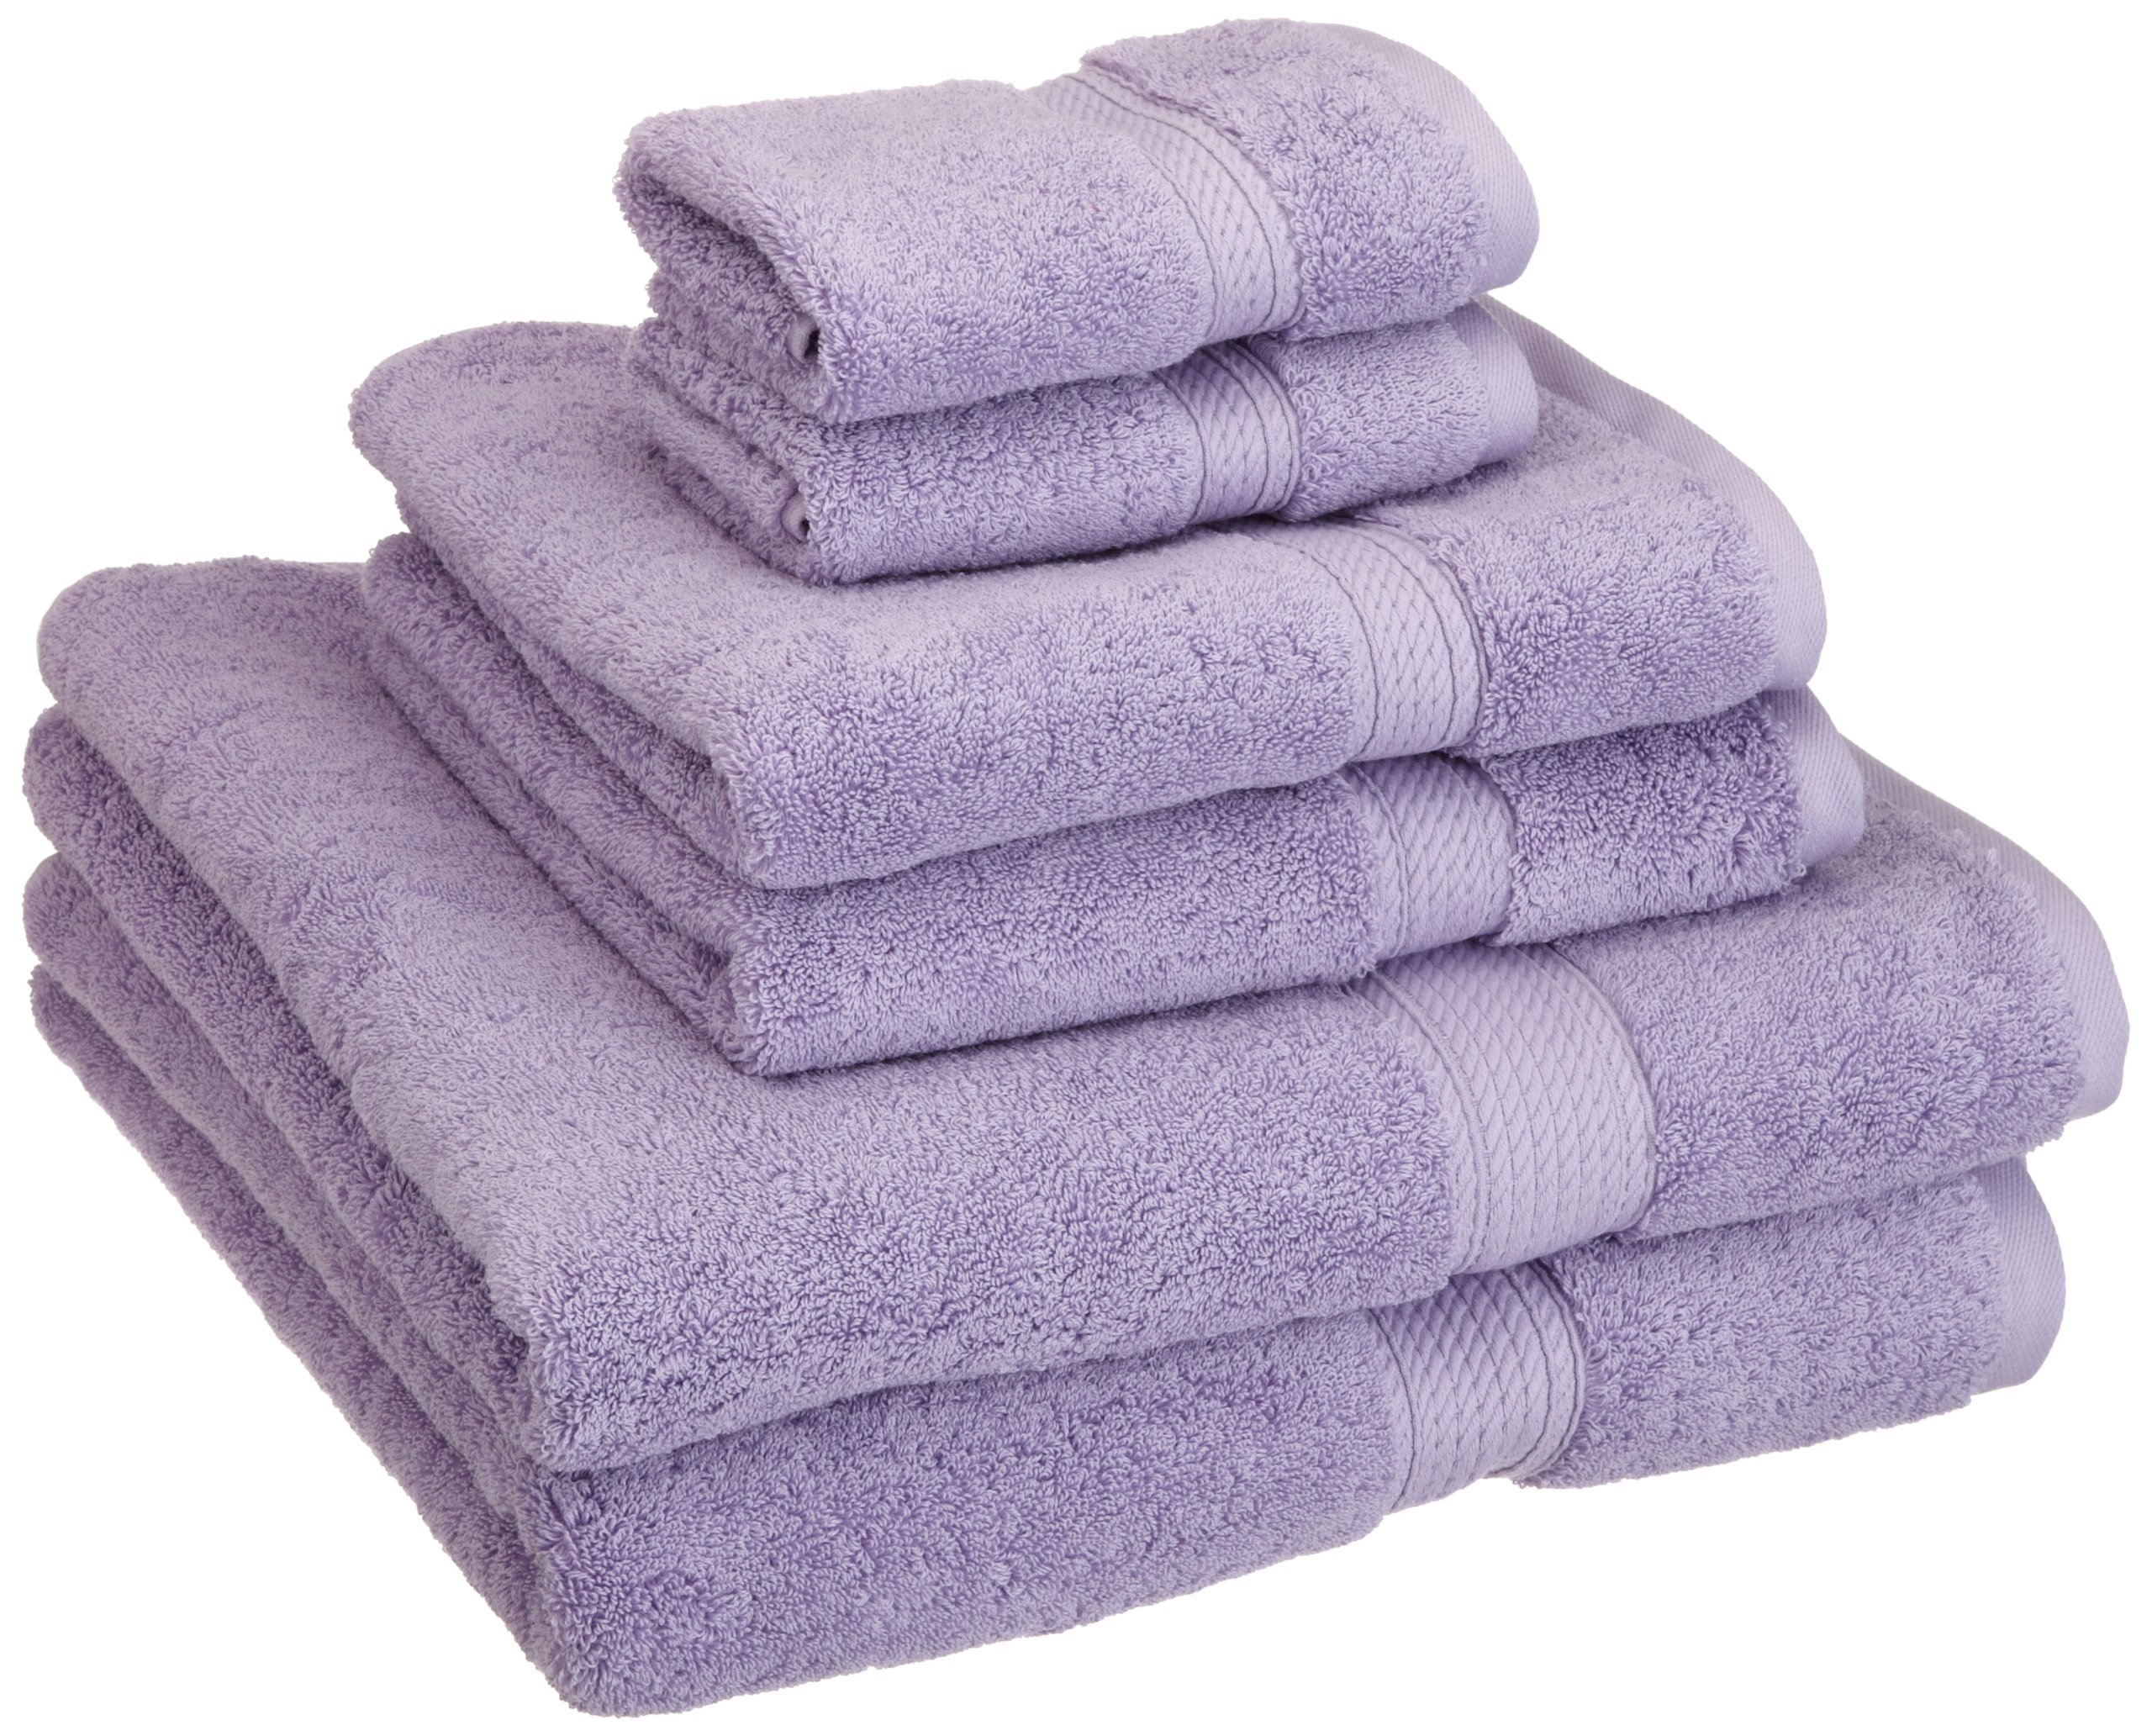 Superior 900 GSM Luxury Bathroom 6-Piece Towel Set, Made of 100% Premium Long-Staple Combed Cotton, 2 Hotel & Spa Quality Washcloths, 2 Hand Towels, and 2 Bath Towels - Purple by Superior